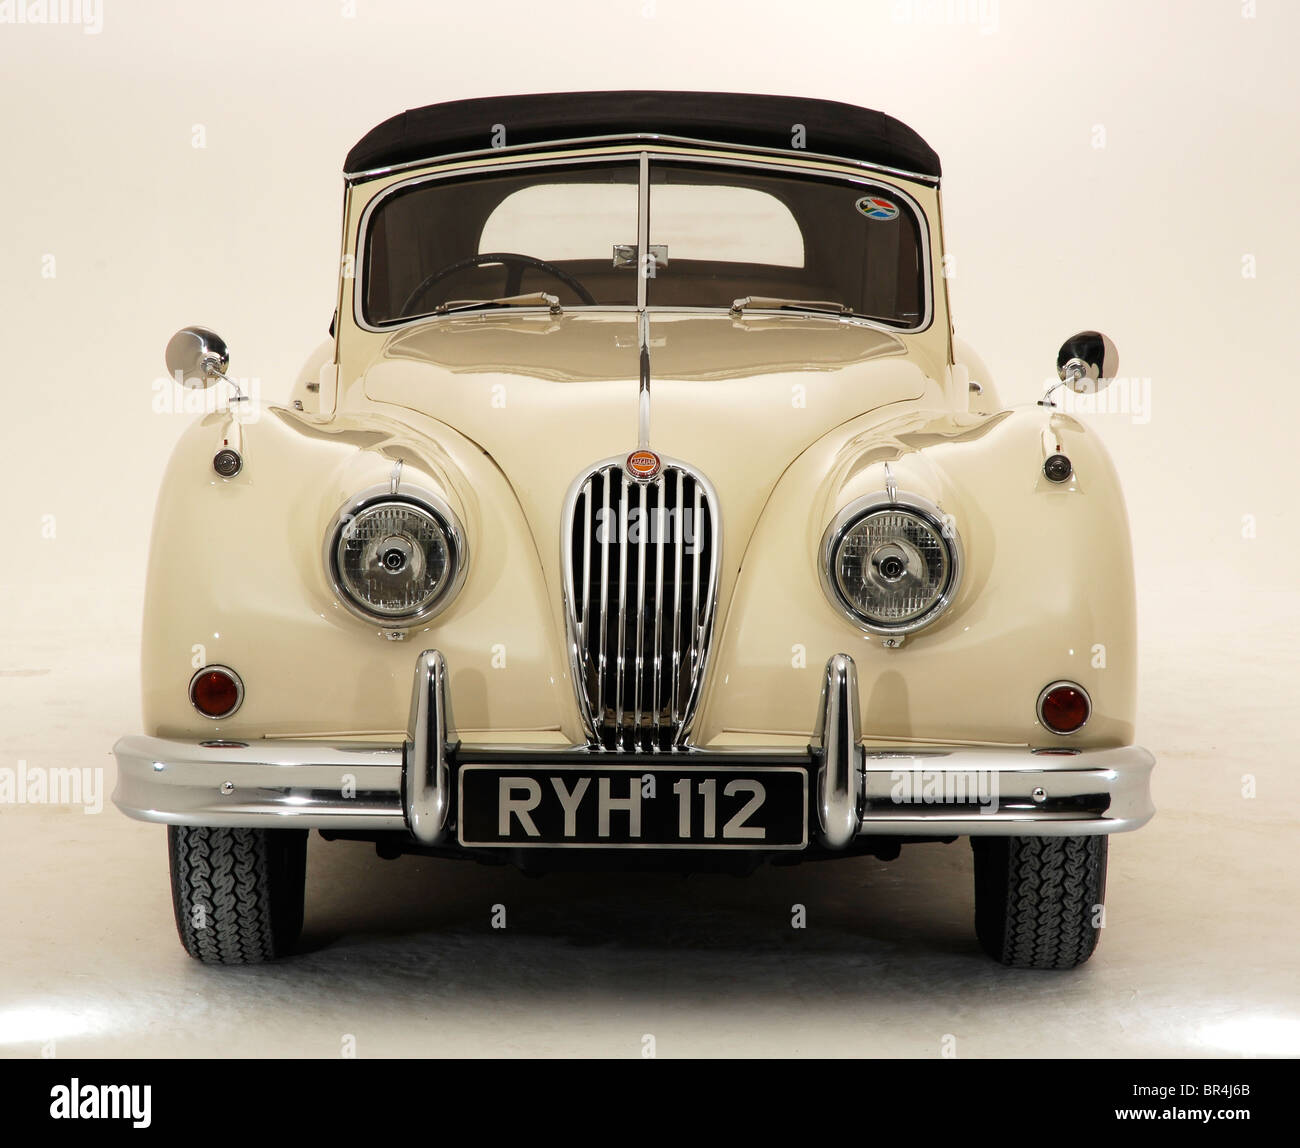 1954 Jaguar Xk140: Jaguar Xk140 Stock Photos & Jaguar Xk140 Stock Images